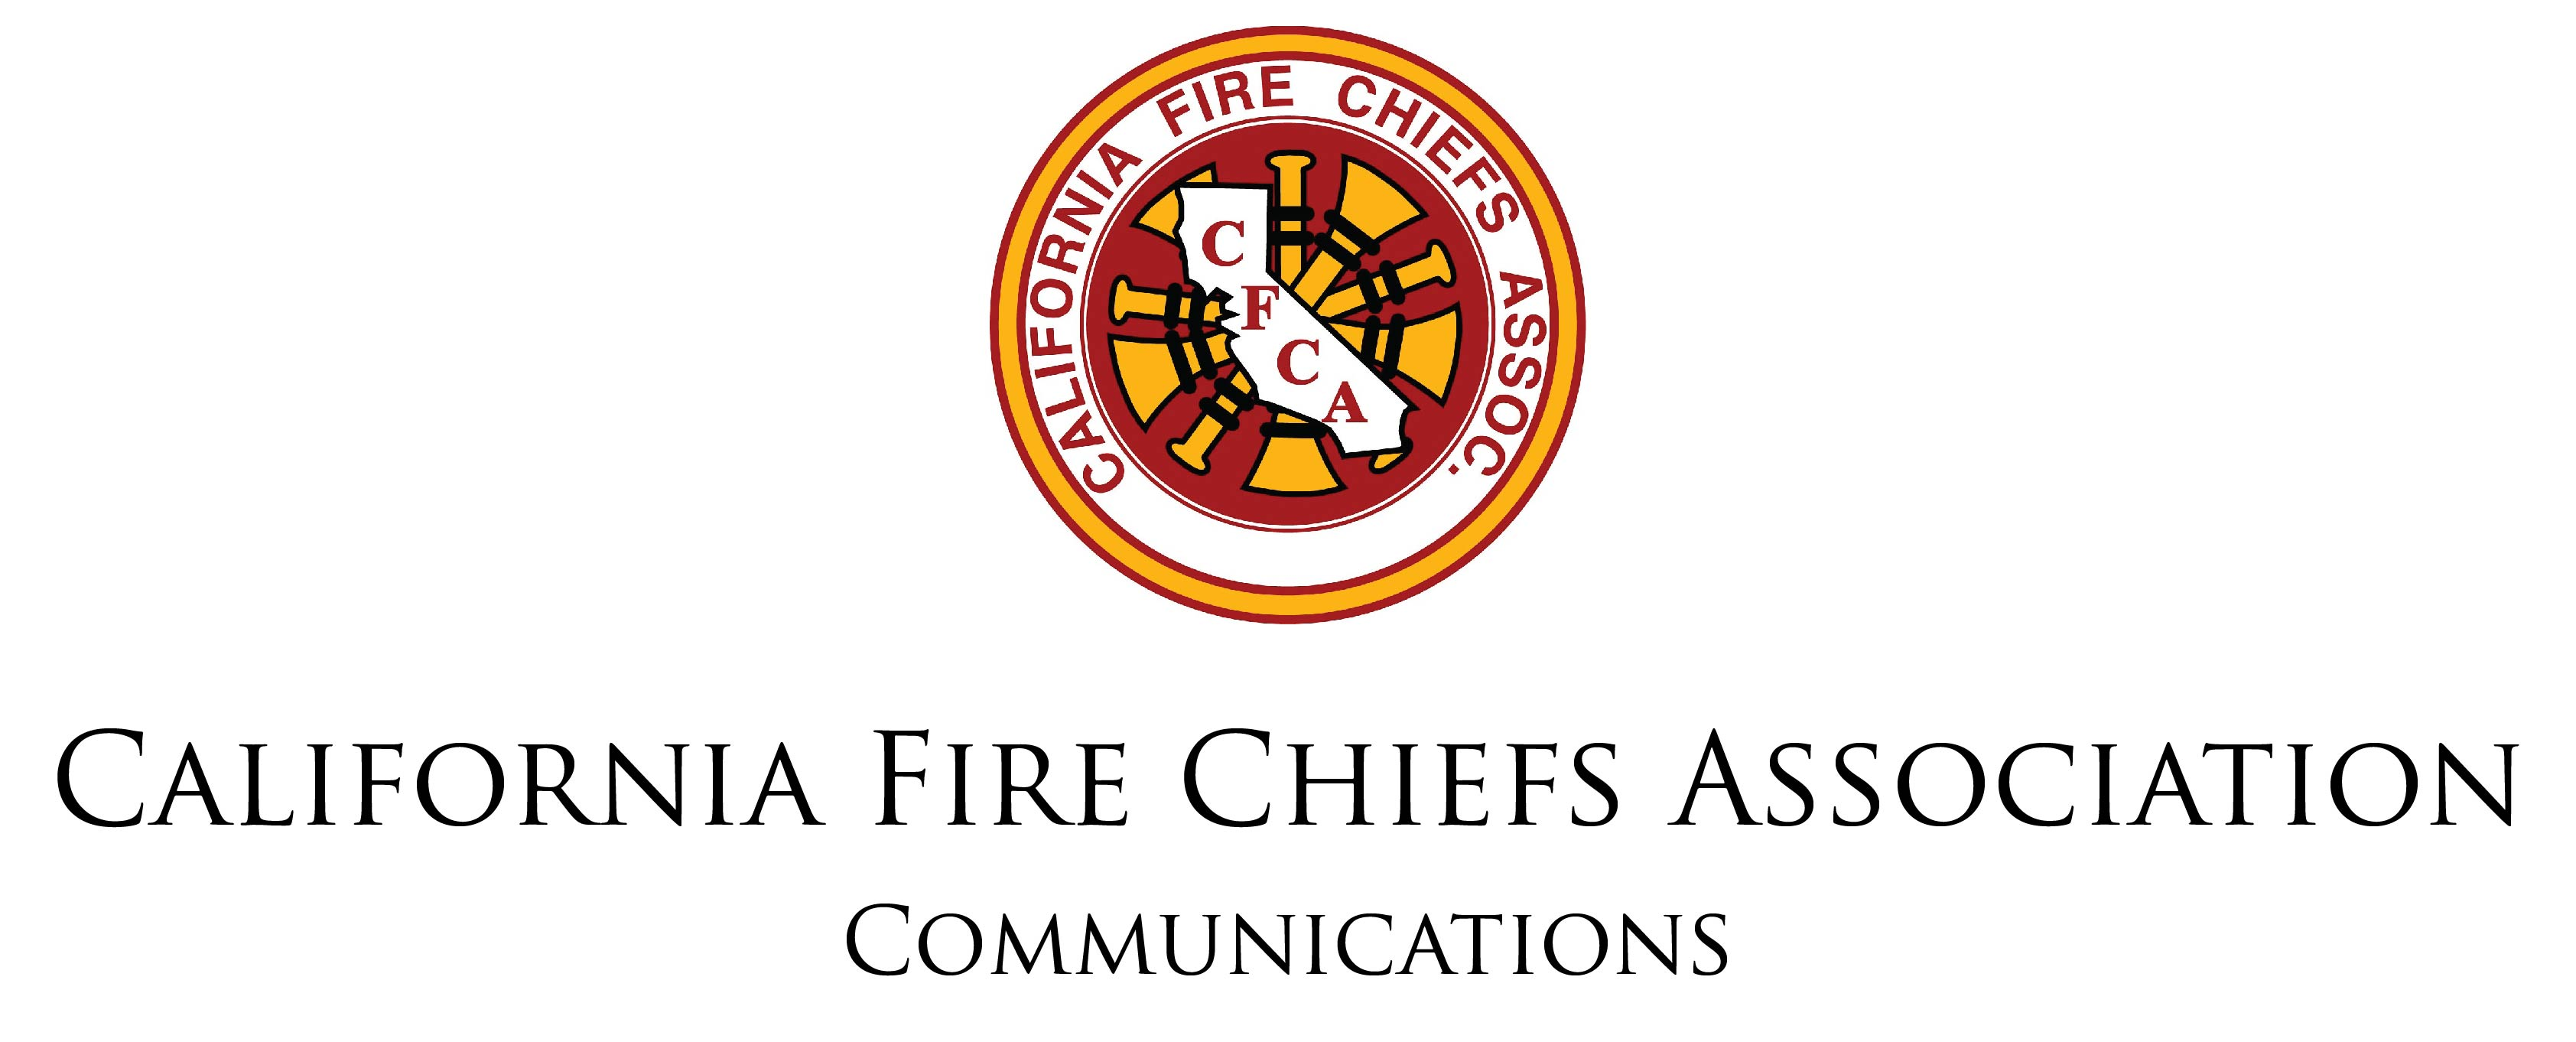 California Fire Chiefs Association - Communications